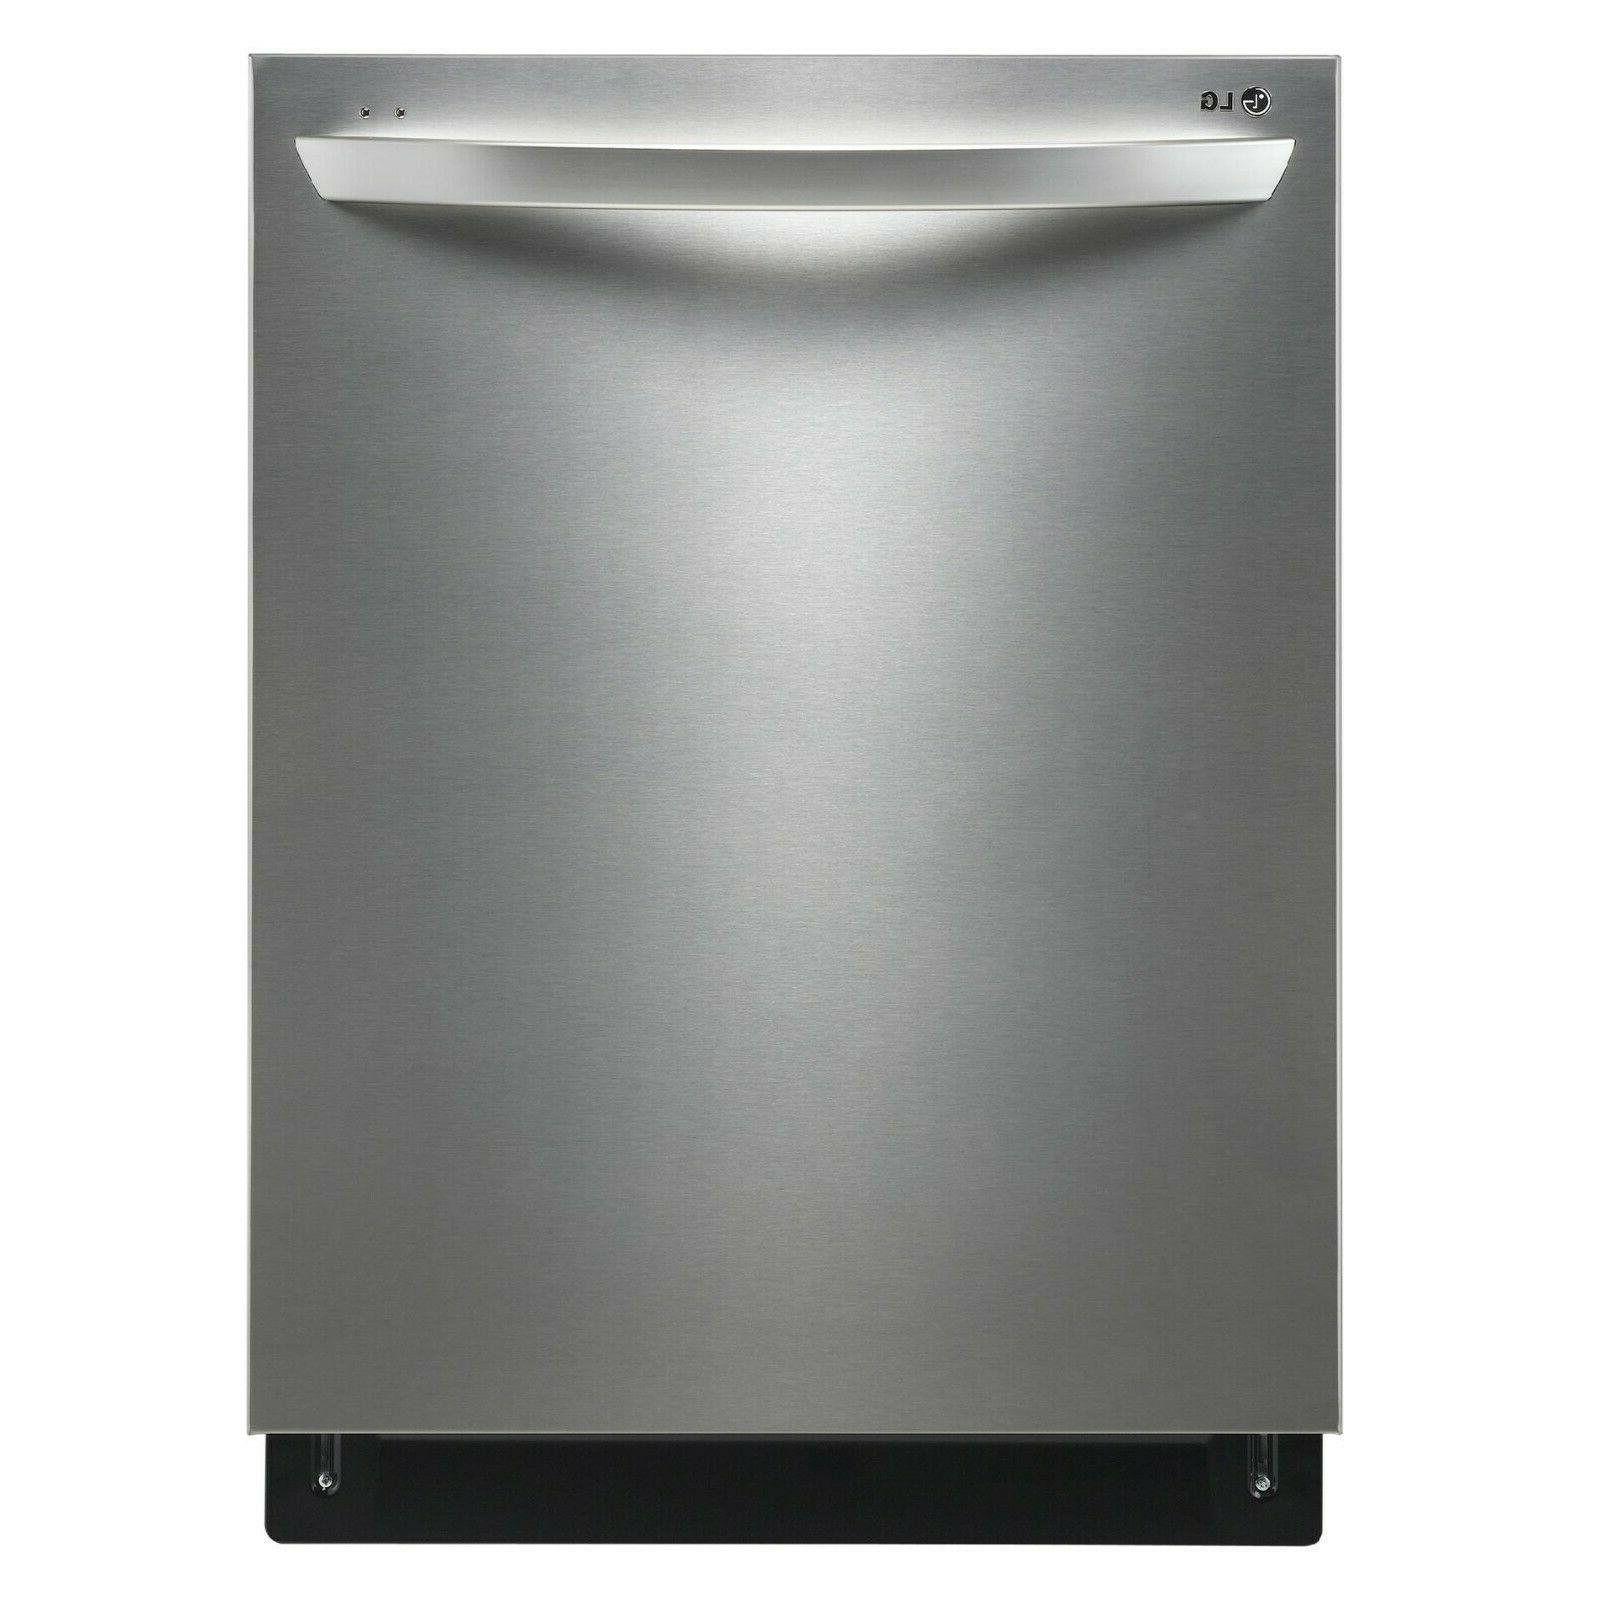 new ldf7774st fully integrated dishwasher